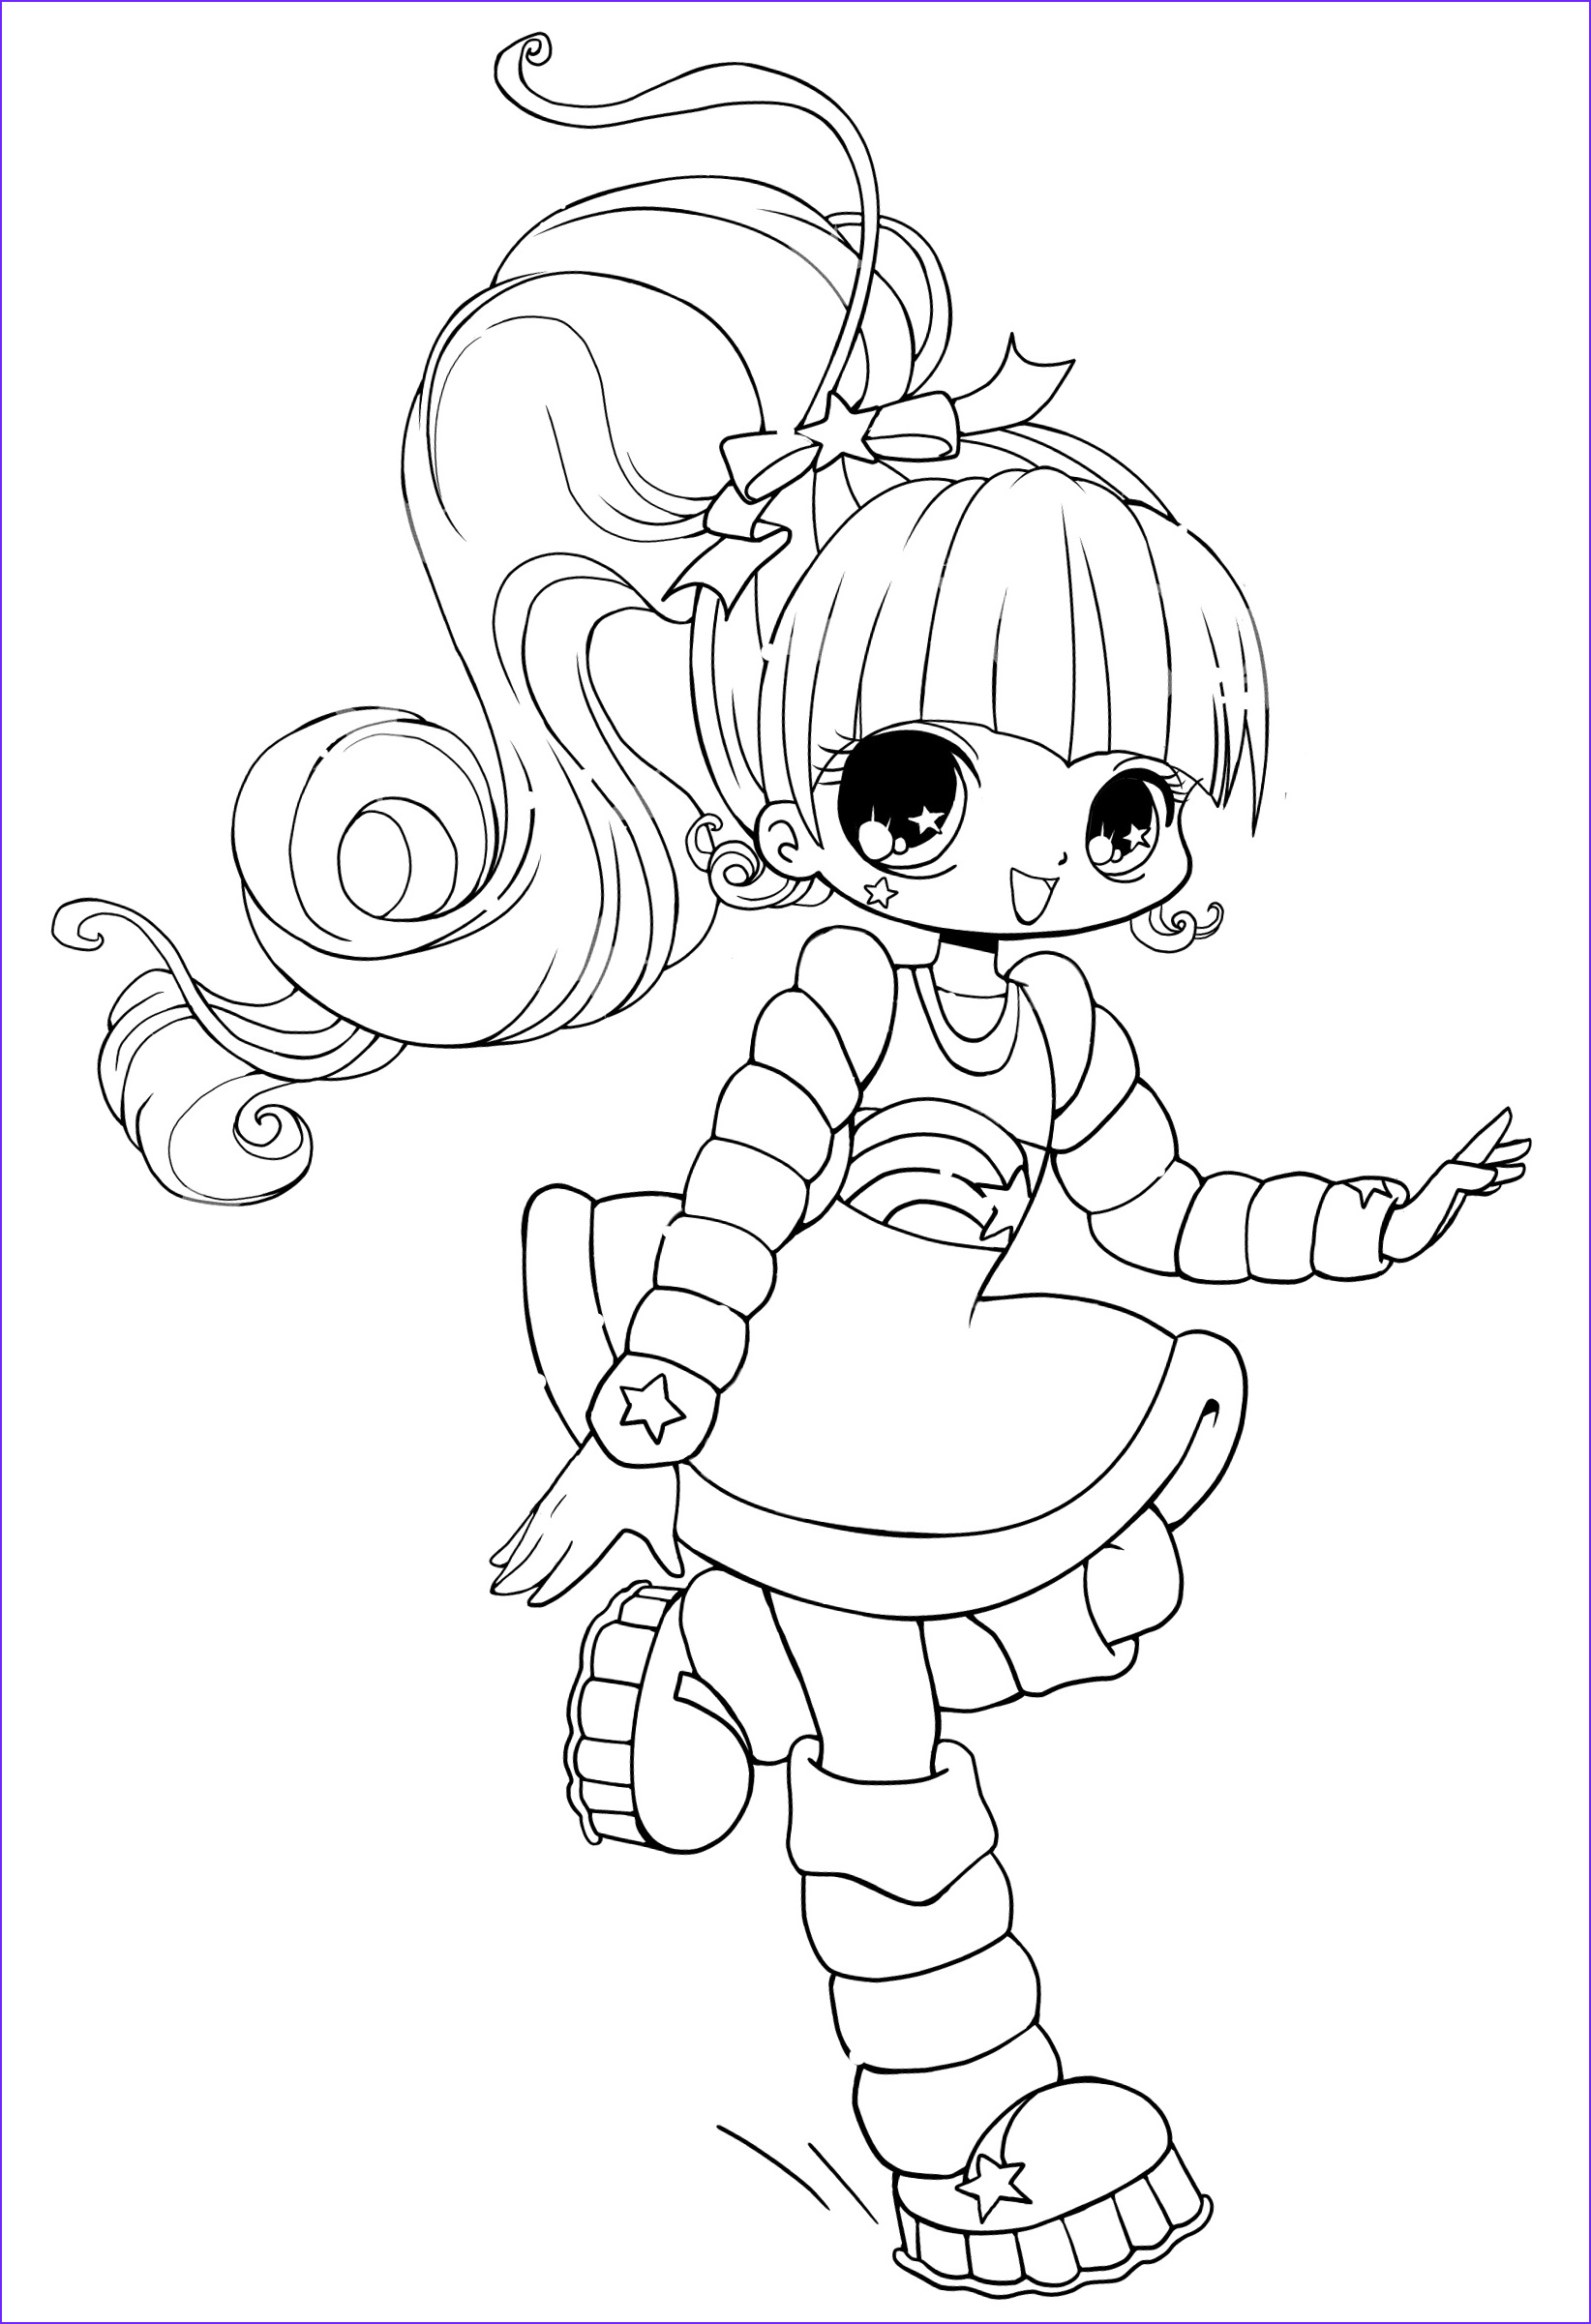 People Coloring Cool Image Free Printable Chibi Coloring Pages for Kids